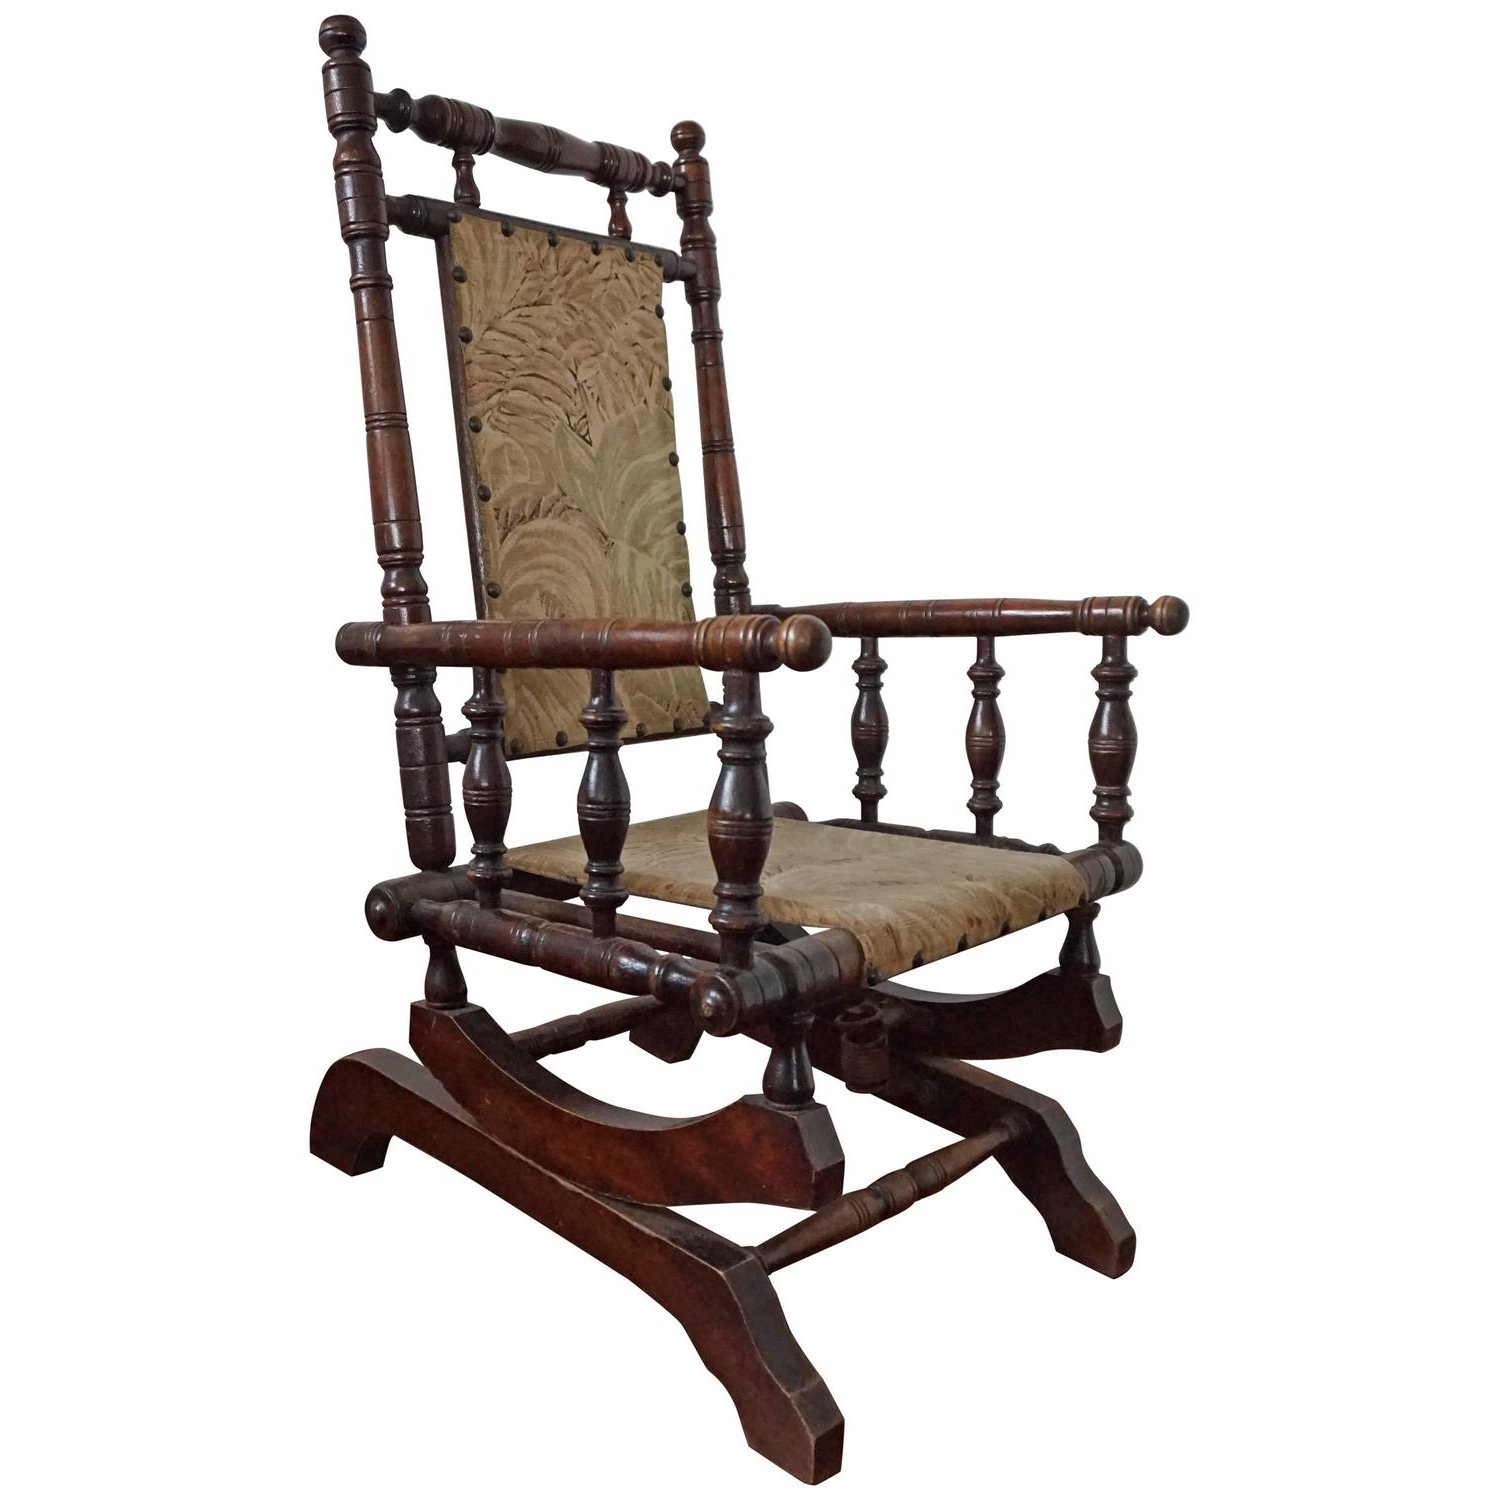 Rare Antique Rocking Chair For Children American Rocker For Child Or Toy  Bear With Recent Antique Rocking Chairs (View 13 of 15)